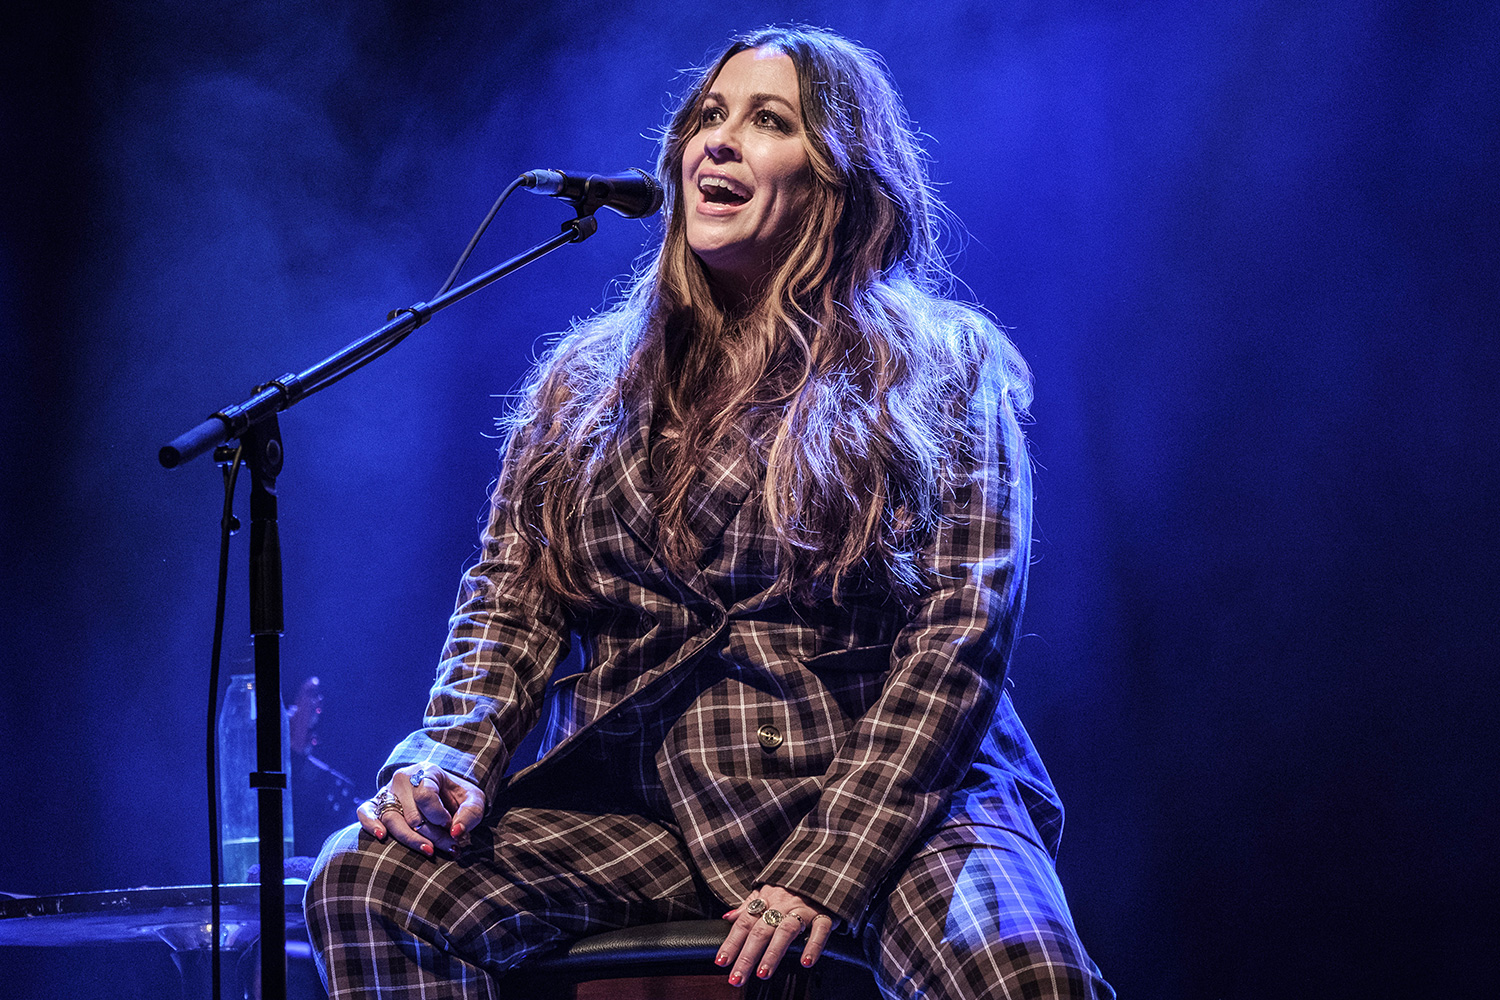 Alanis Morissette performs at O2 Shepherd's Bush Empire on March 04, 2020 in London, England